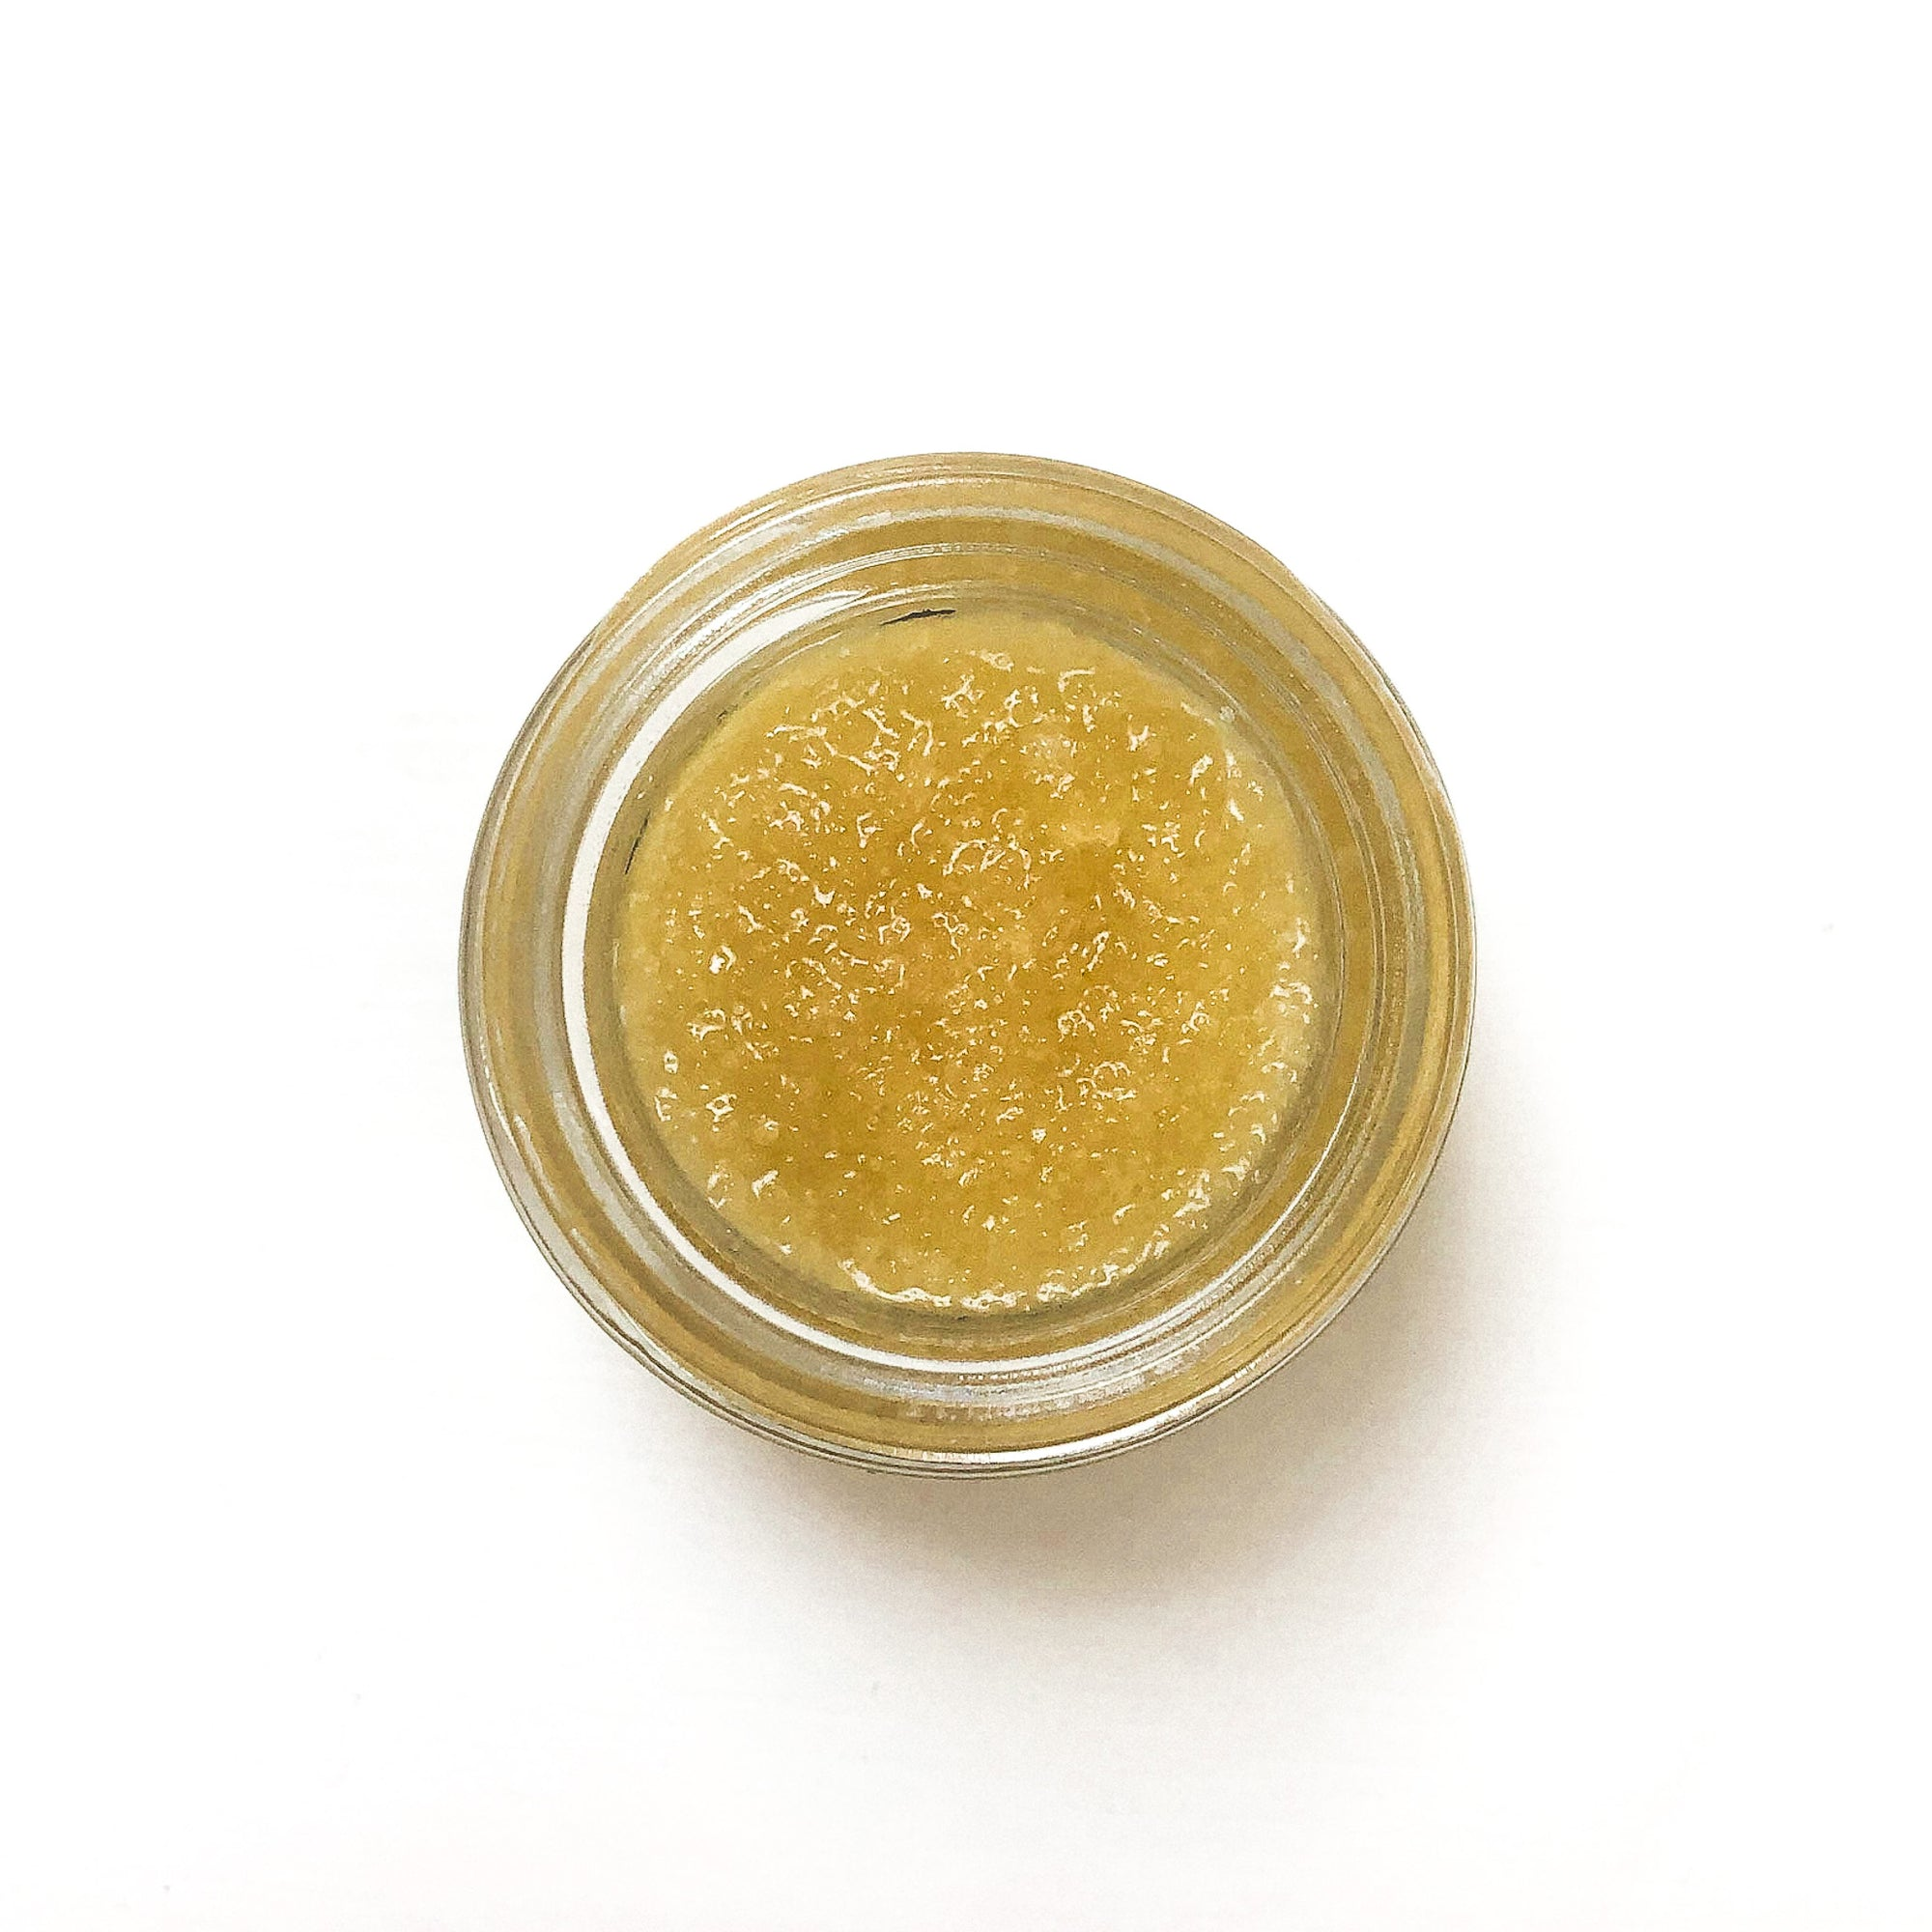 Uplift Vegan Organic Lip Scrub by Corinne Taylor. 100% natural, cruelty free, Organic Coconut oil, Jojoba oil, Peppermint, Tangerine essential oils